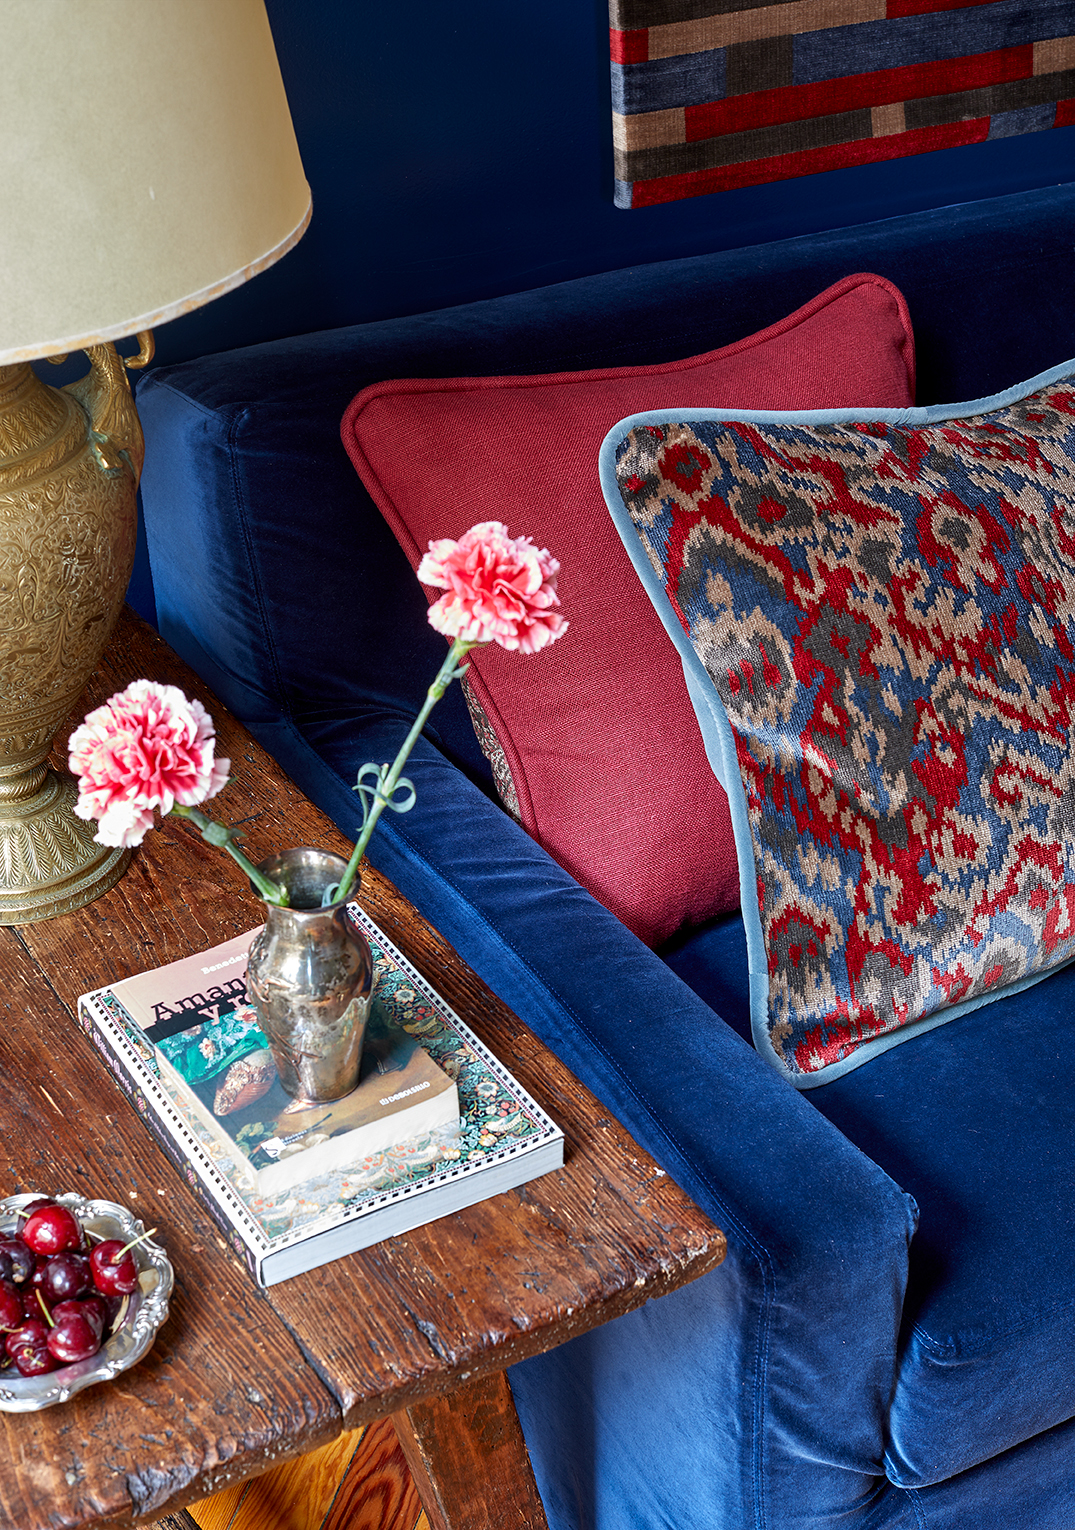 Melian-Raldolph's collection for Güell-LaMadrid is called Bloomsbury and includes linens, linen sheers, velvets, jacquards, cottons in four colorways that range from blues and greens to terracotta and ochres.